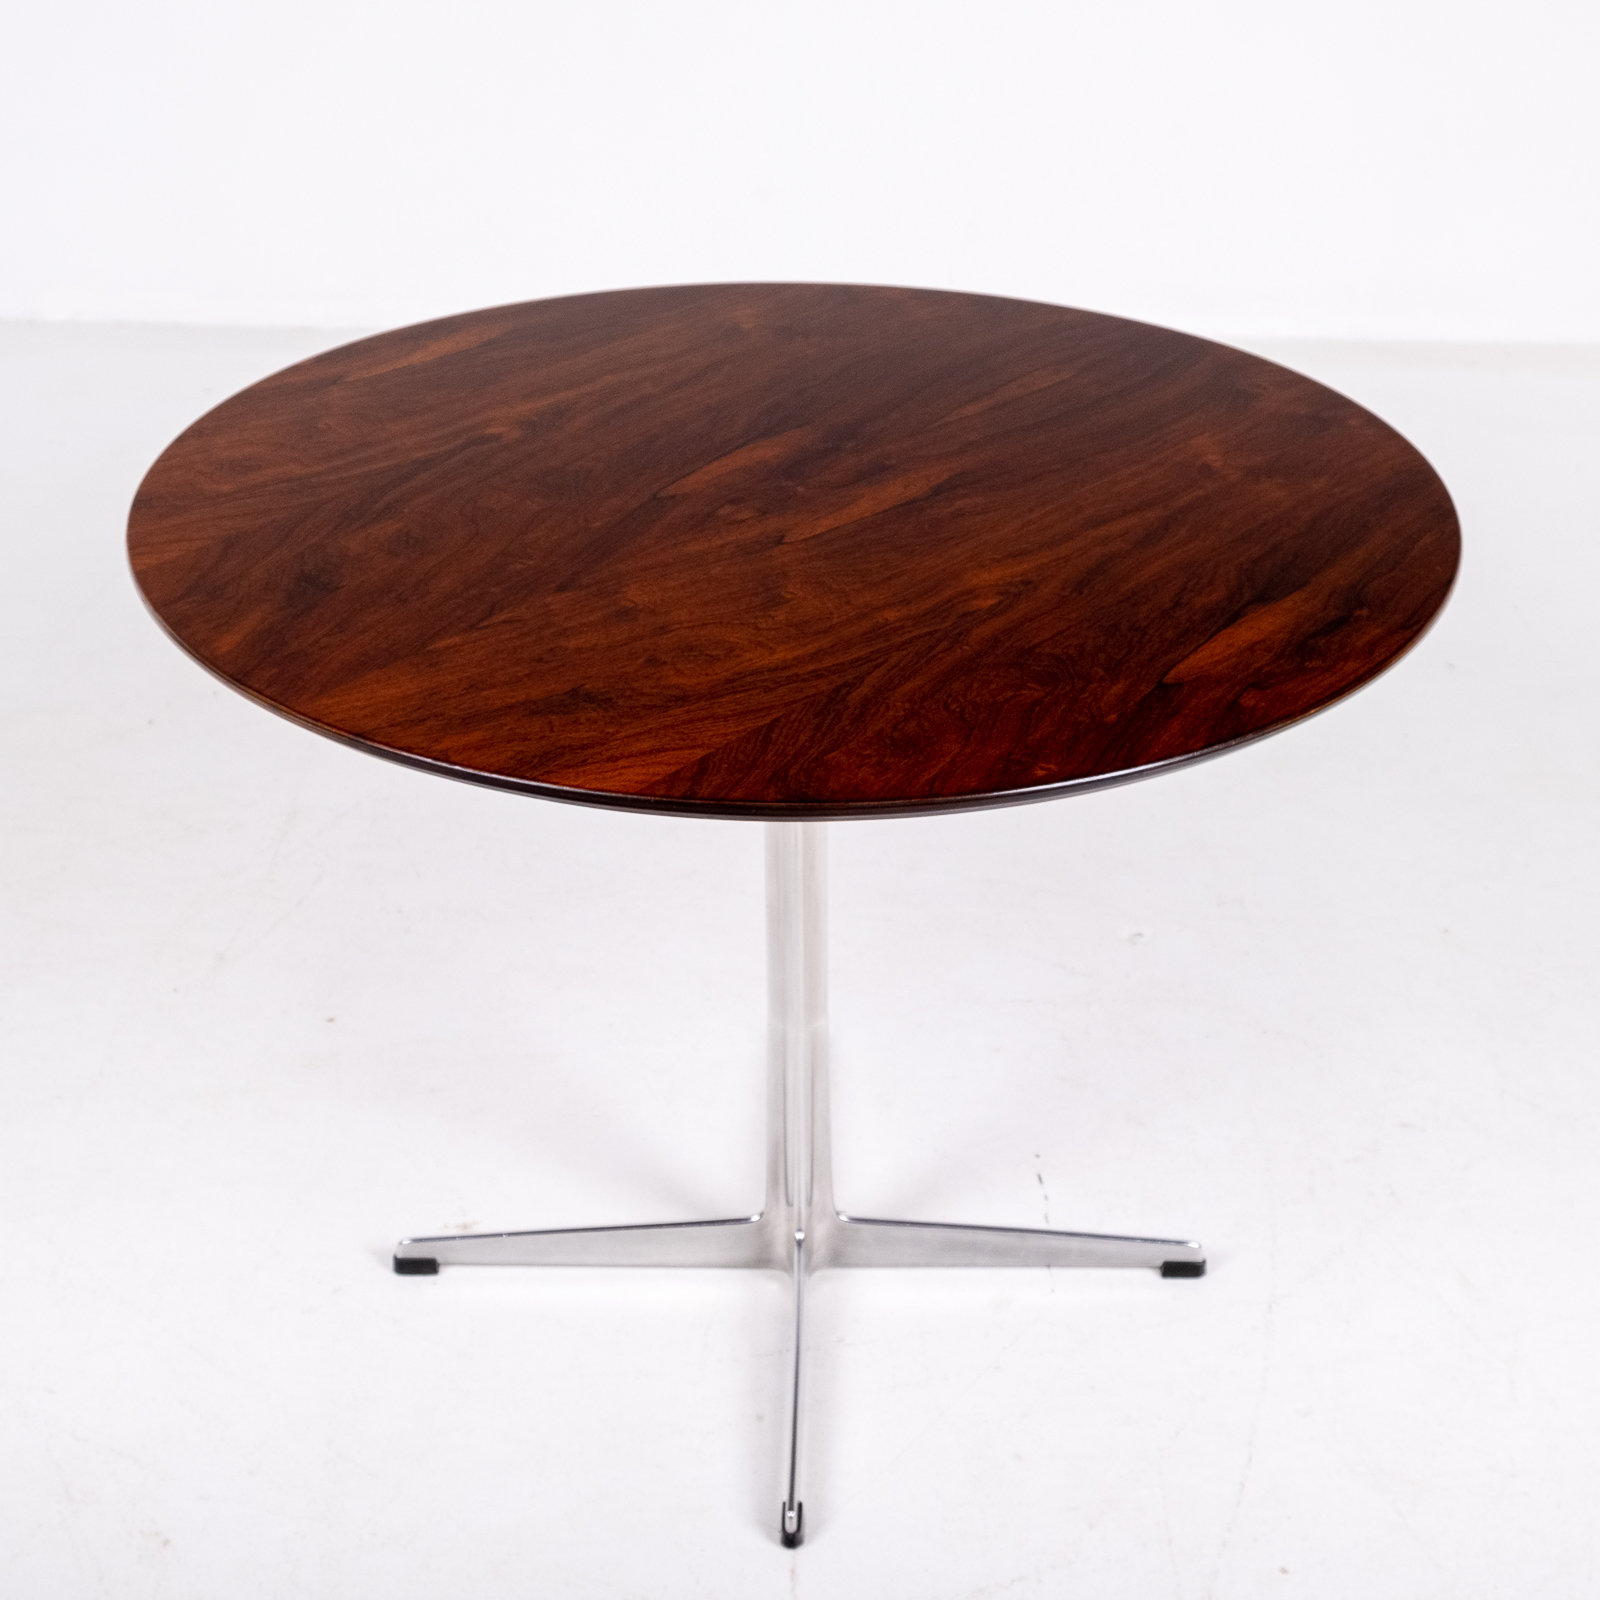 Cafe Table By Arne Jacobsen With Rosewood Top And Steel Pedestal Base, 1960s, Denmark 05